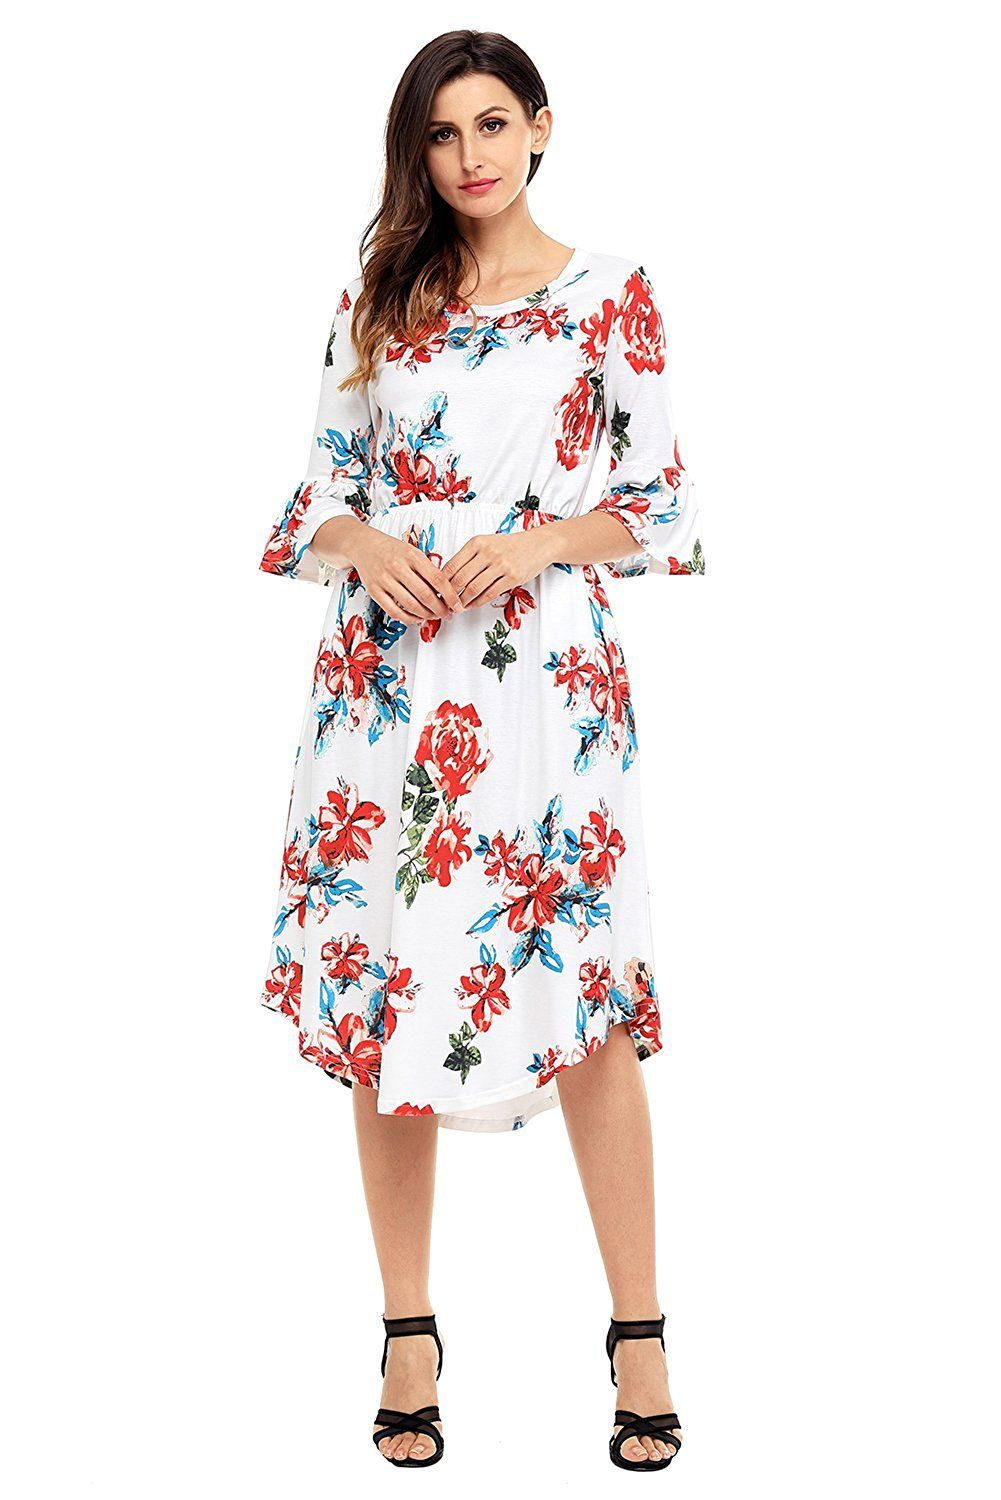 17bbd92833d Annflat Women s Summer Floral Print Bell Sleeve Casual Midi Dress S-XXL at Amazon  Women s Clothing store